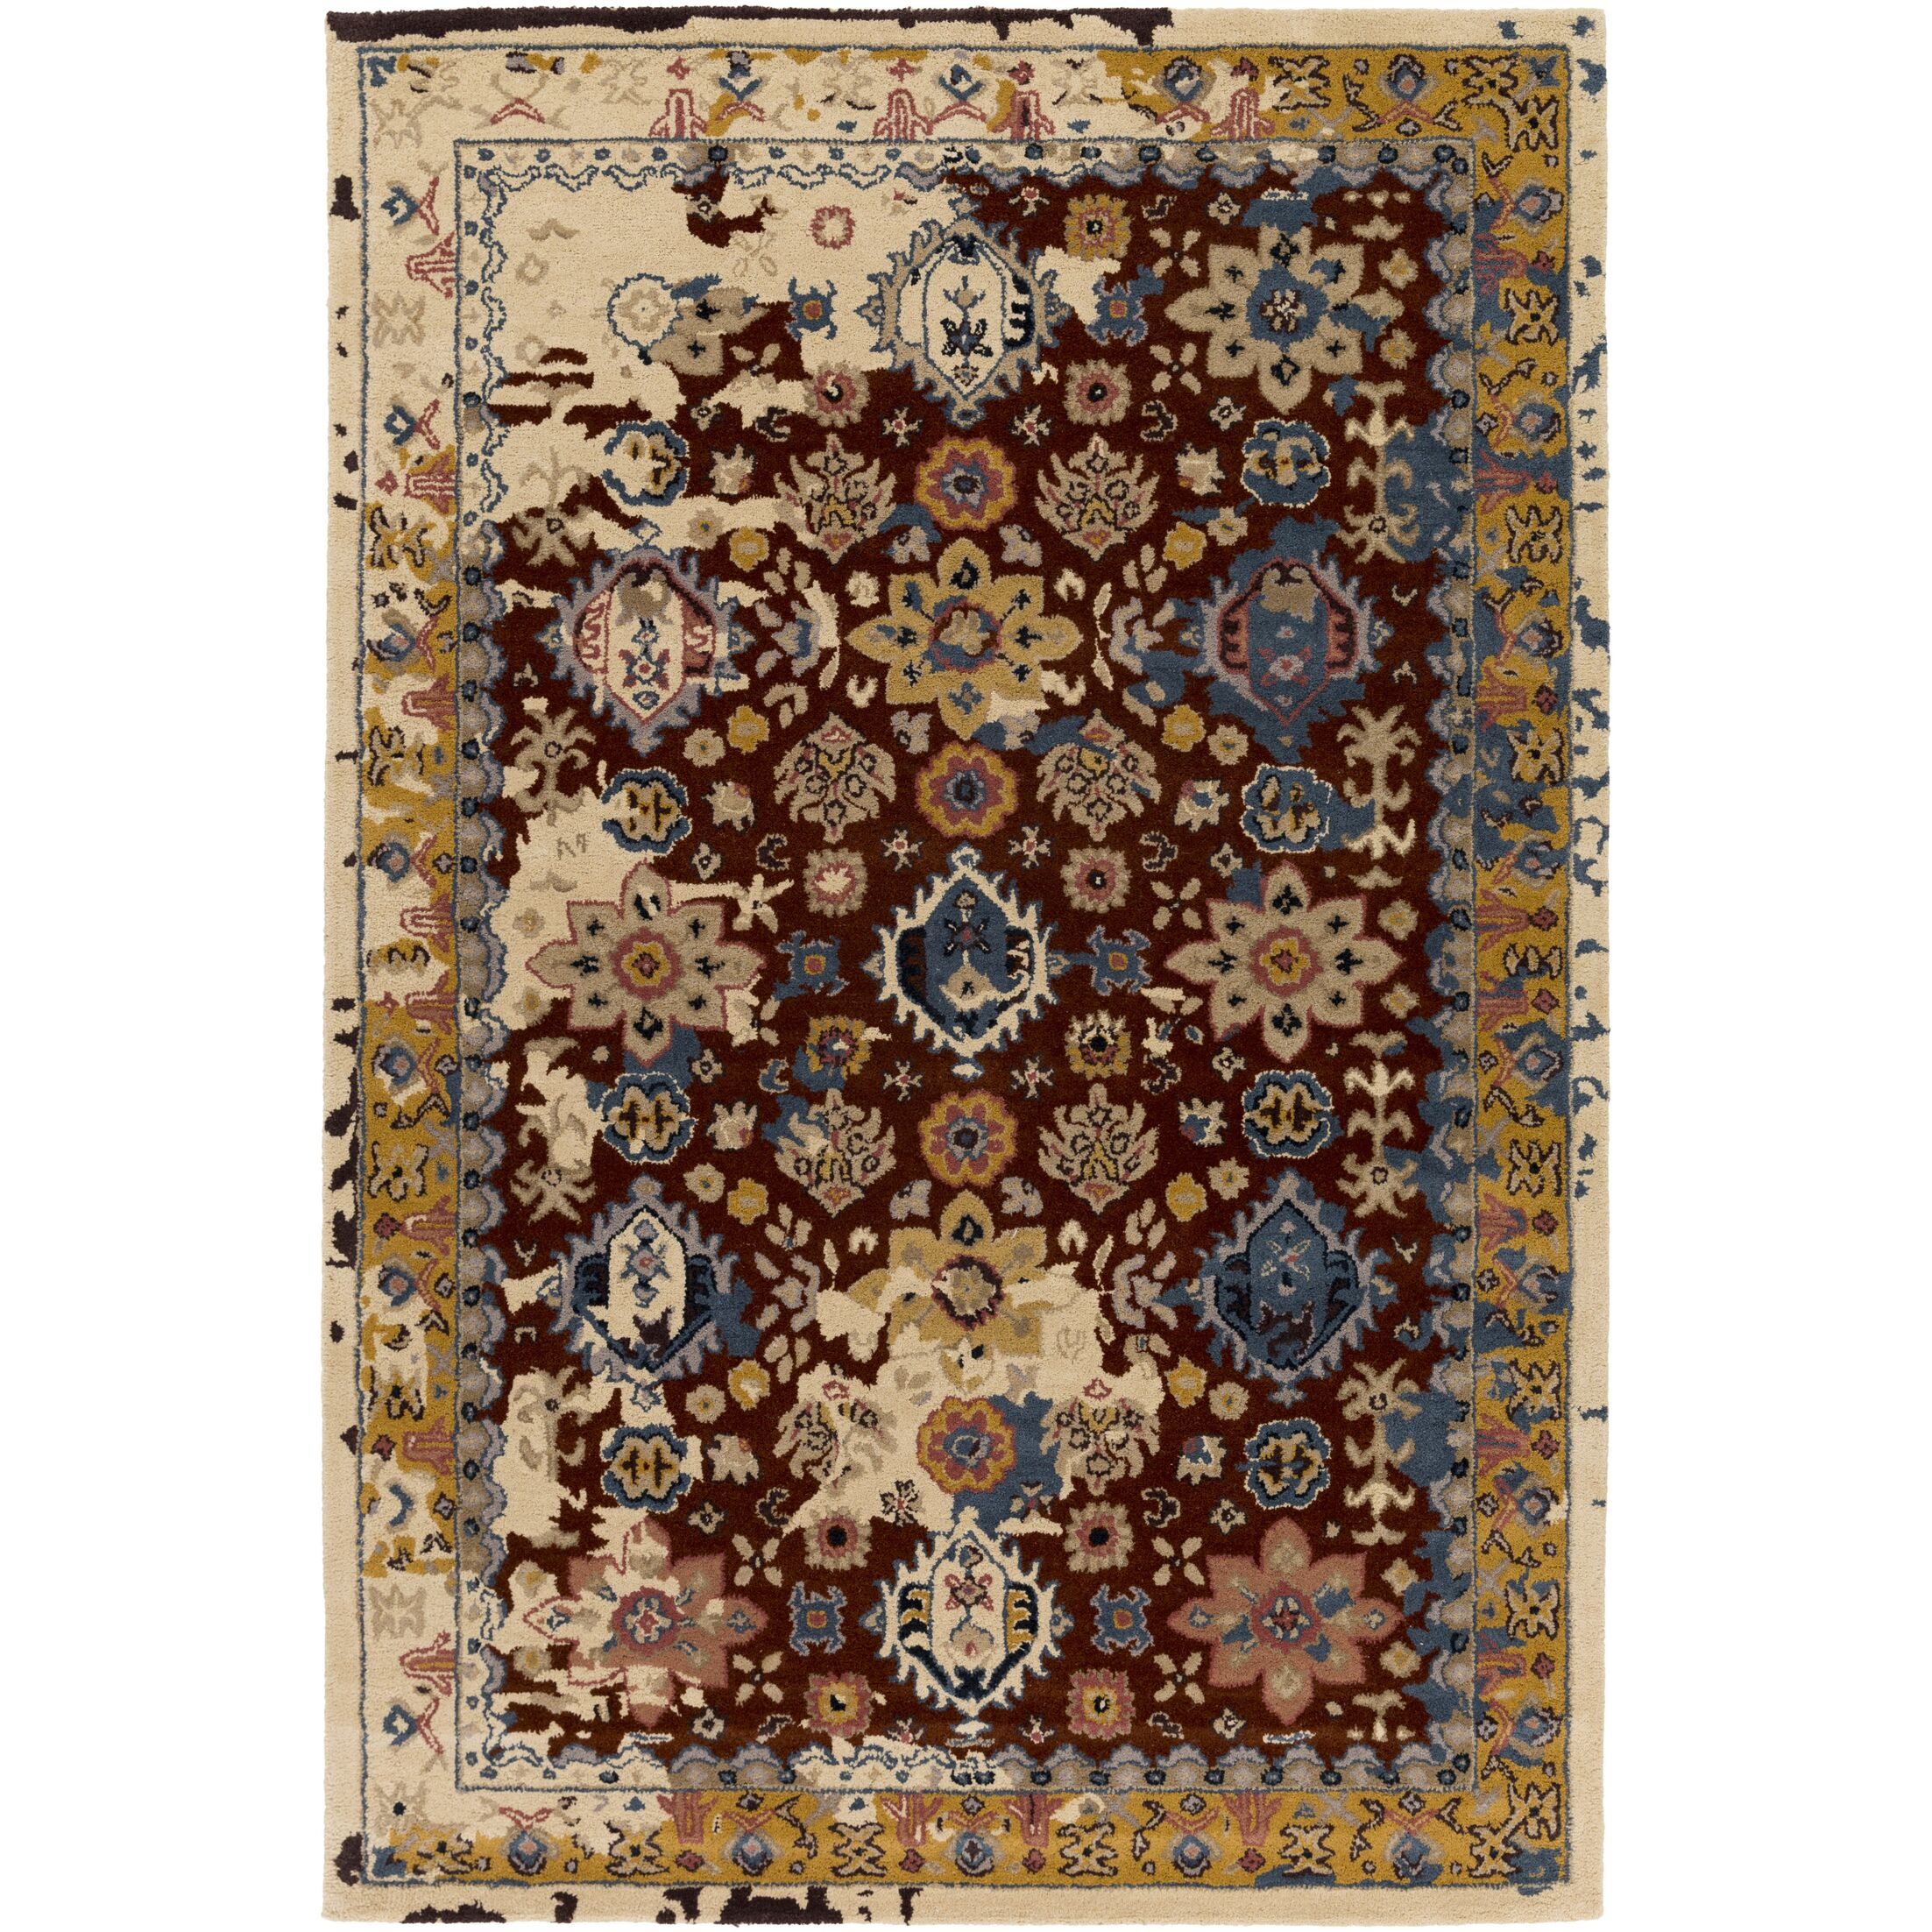 Ivan Hand-Tufted Burgundy Area Rug Rug Size: Rectangle 5' x 7'6